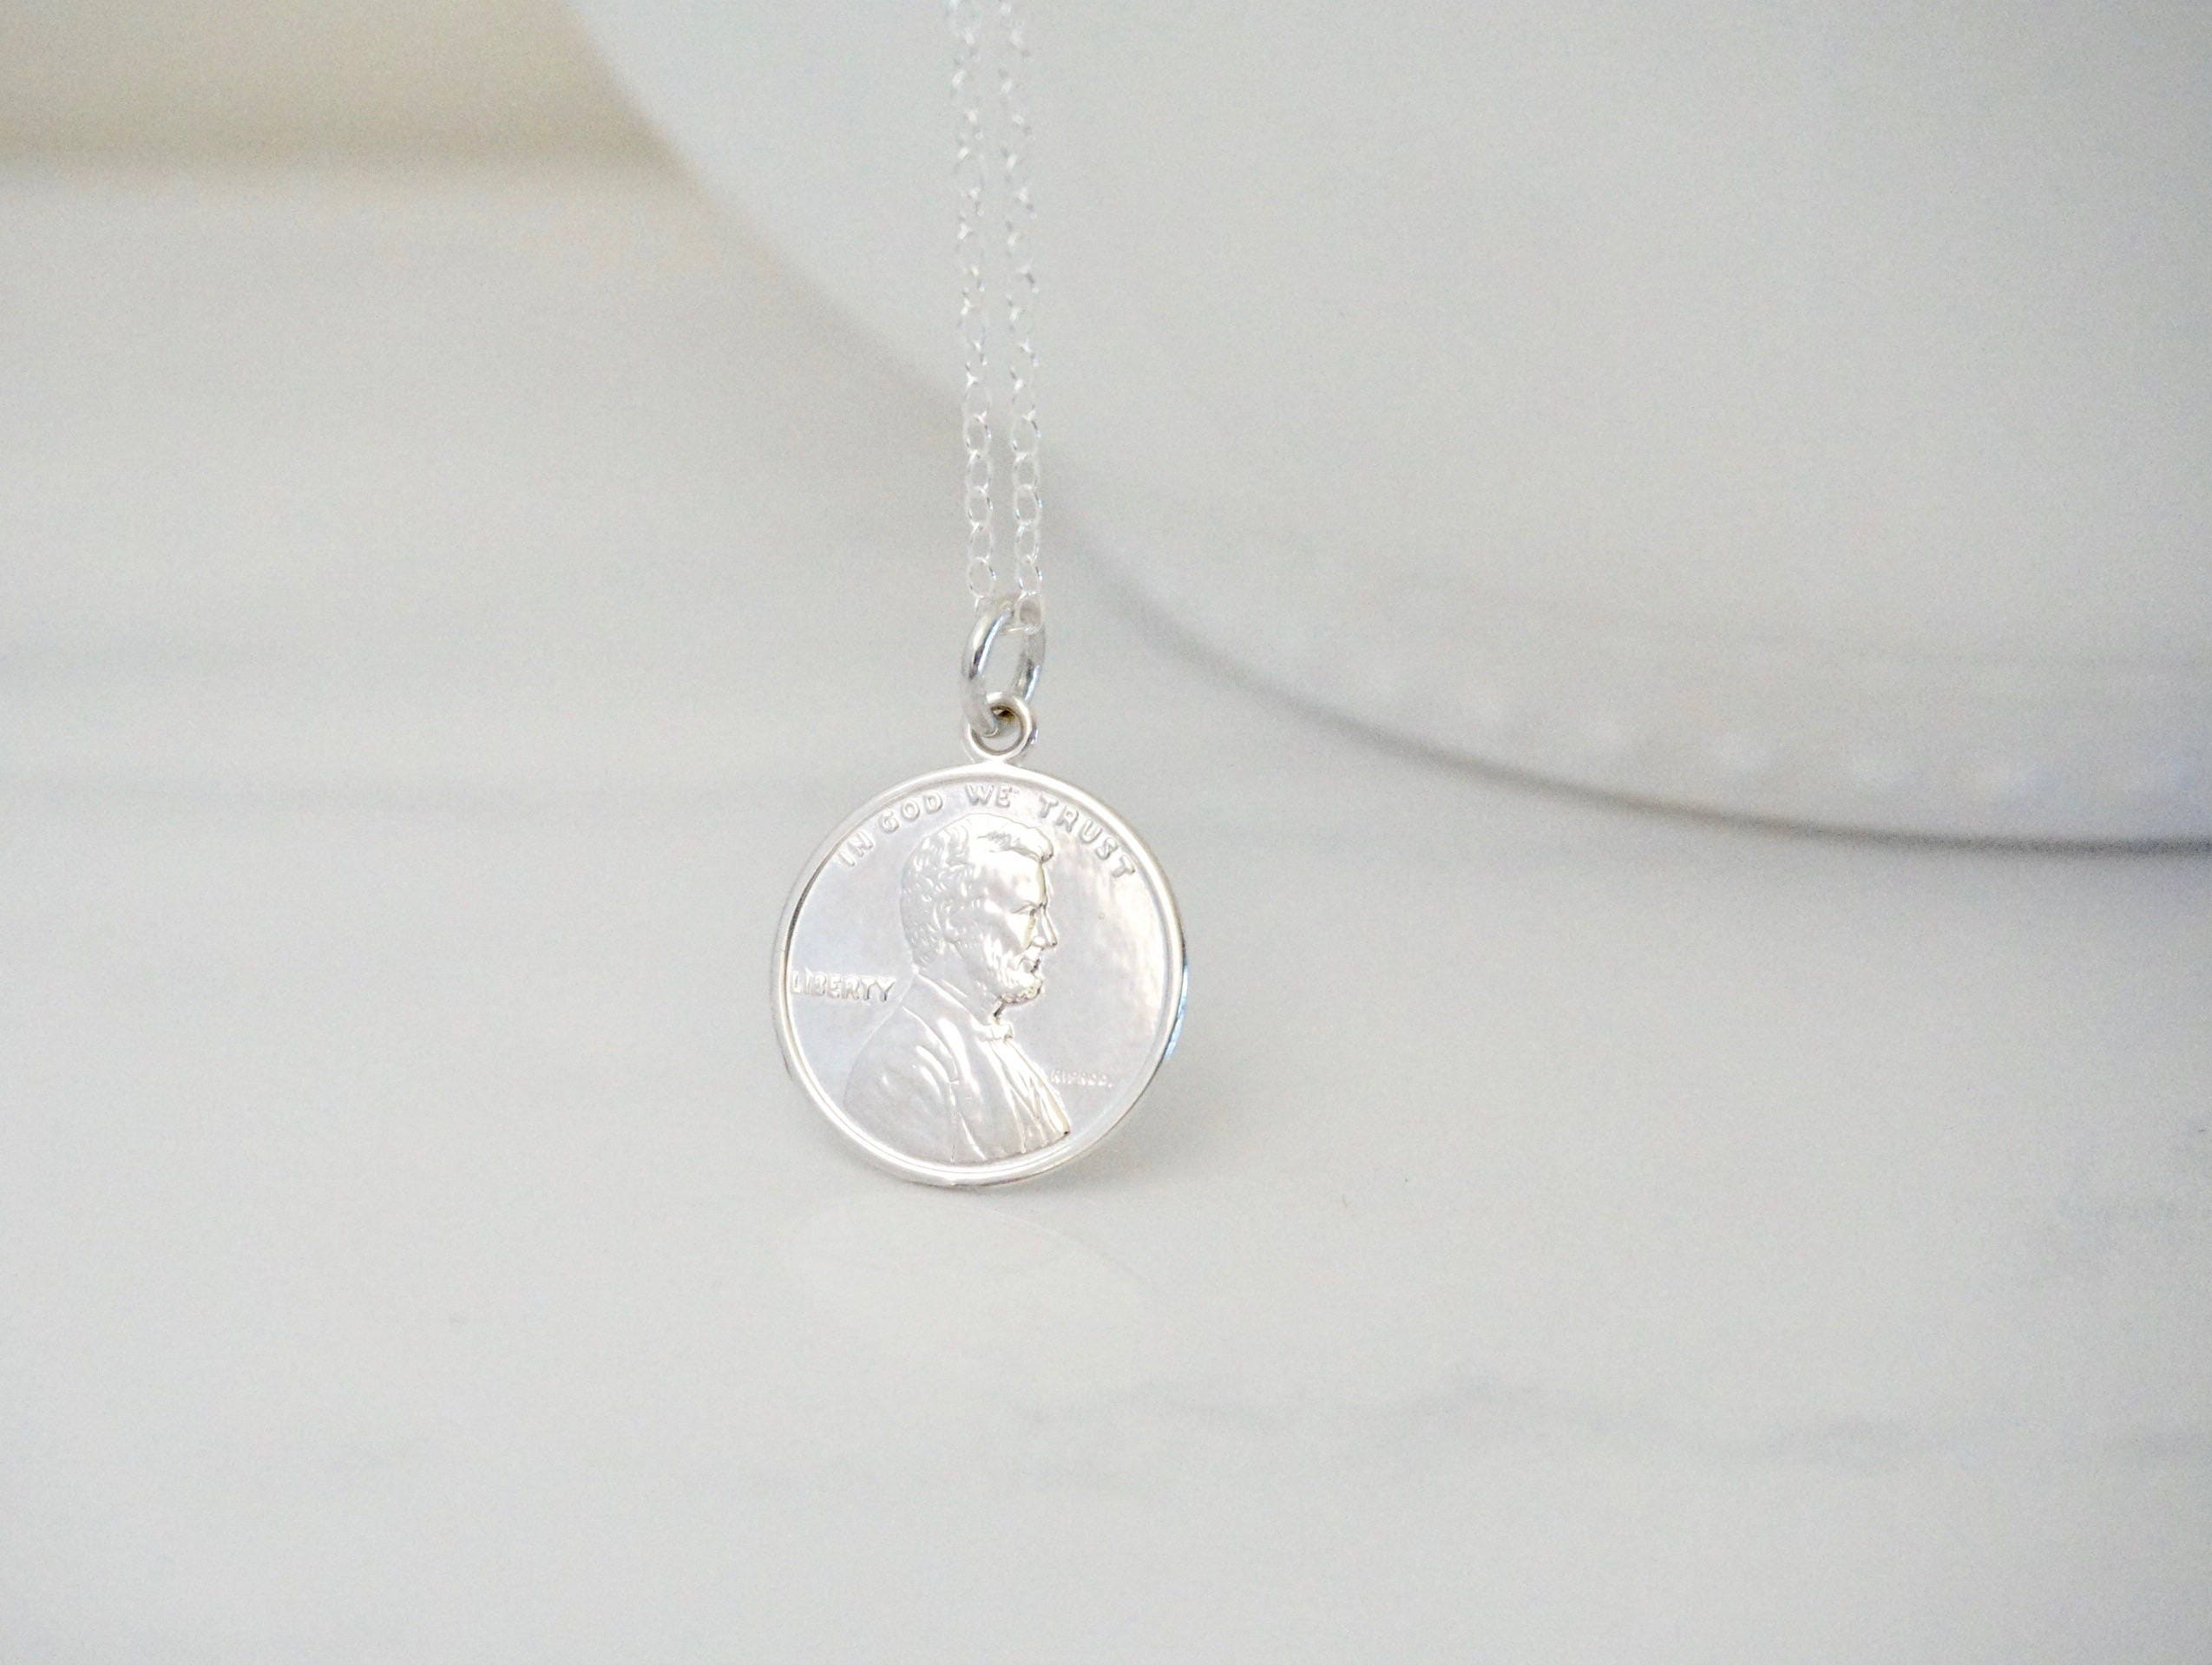 Pennies From Heaven Necklace – HD Wallpapers